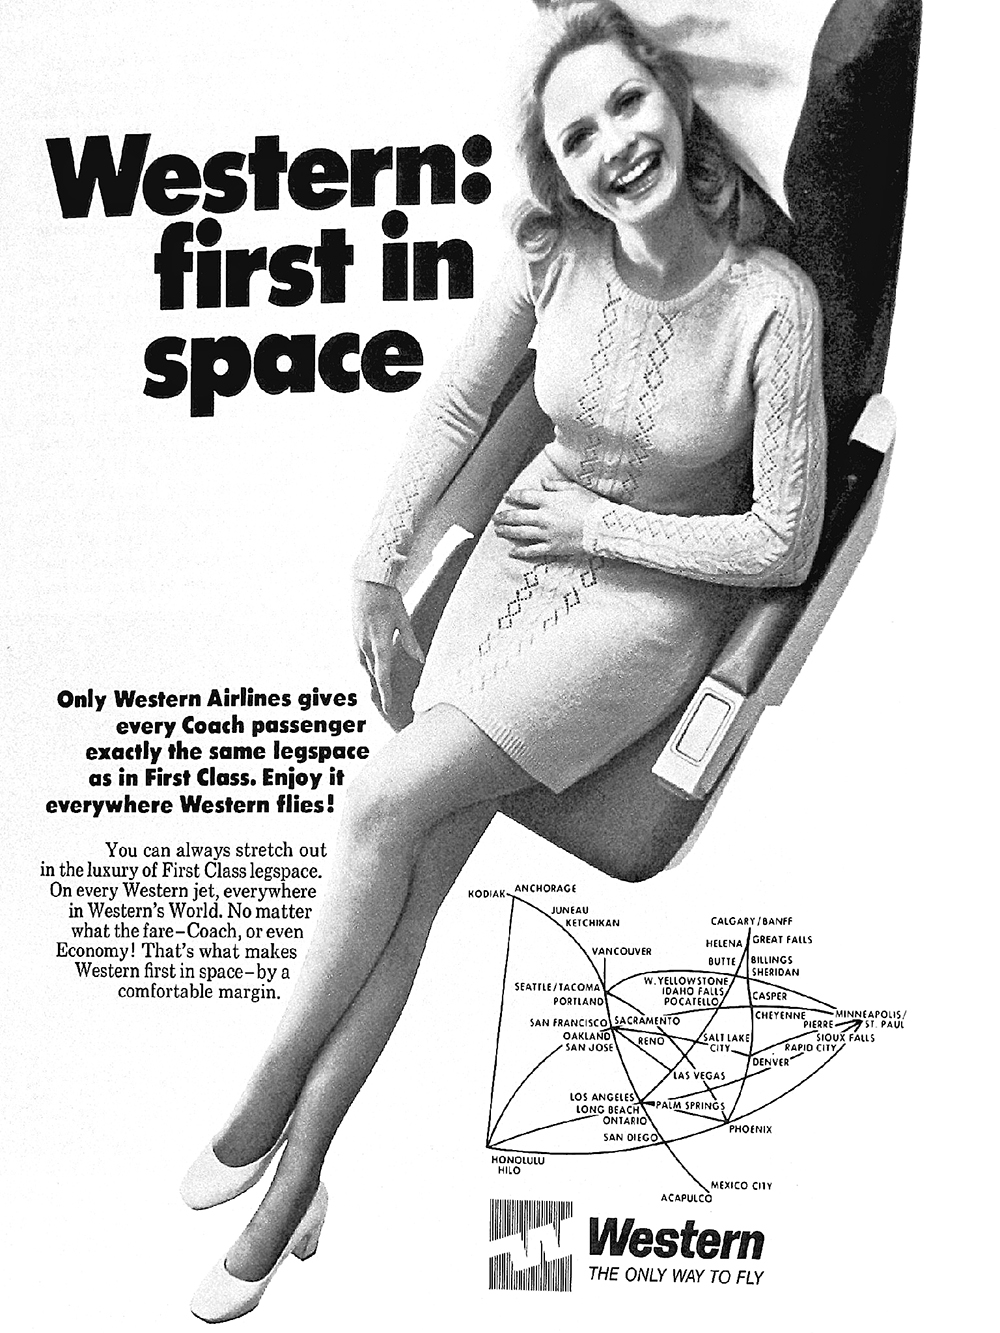 Western airline ad